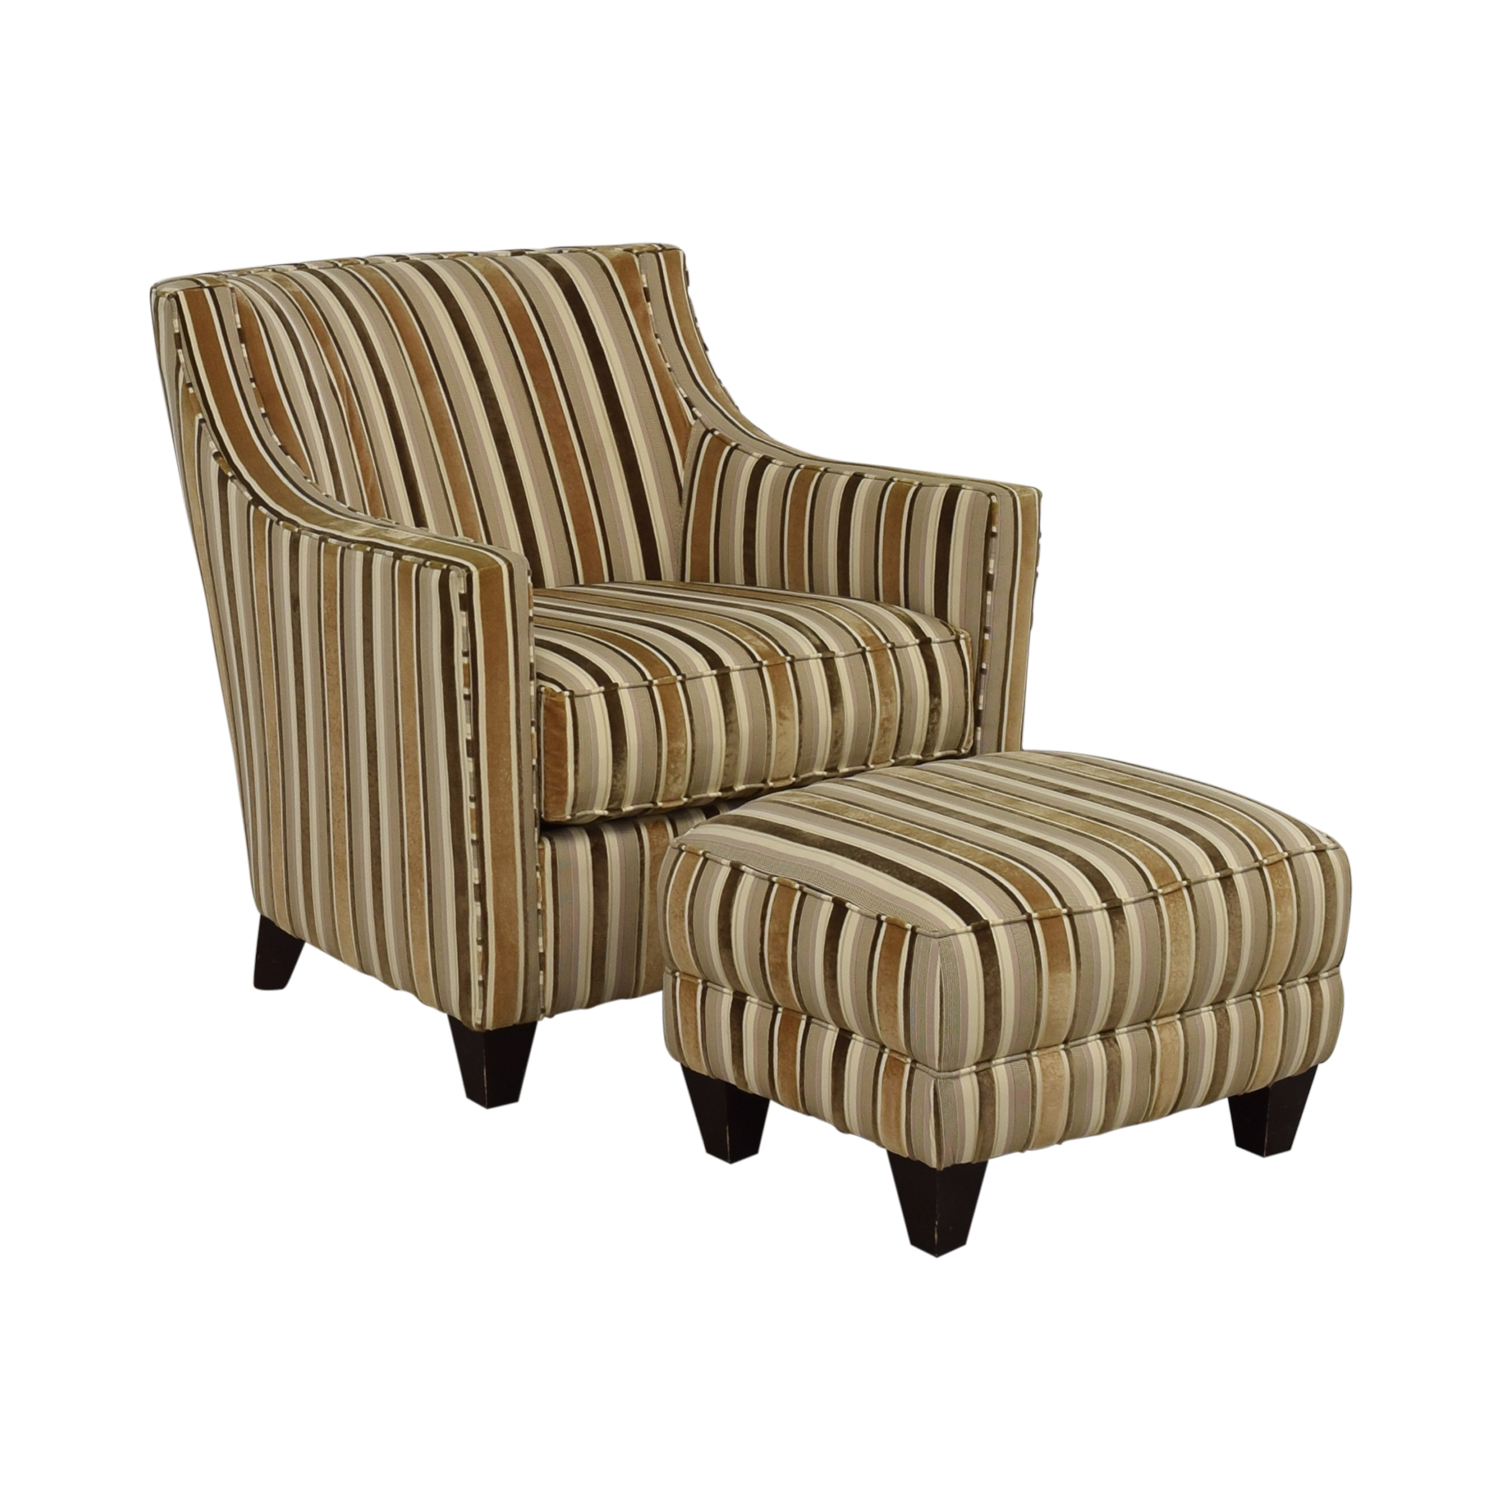 Robert Allen Robert Allen Beige and Brown Striped Accent Chair and Ottoman used